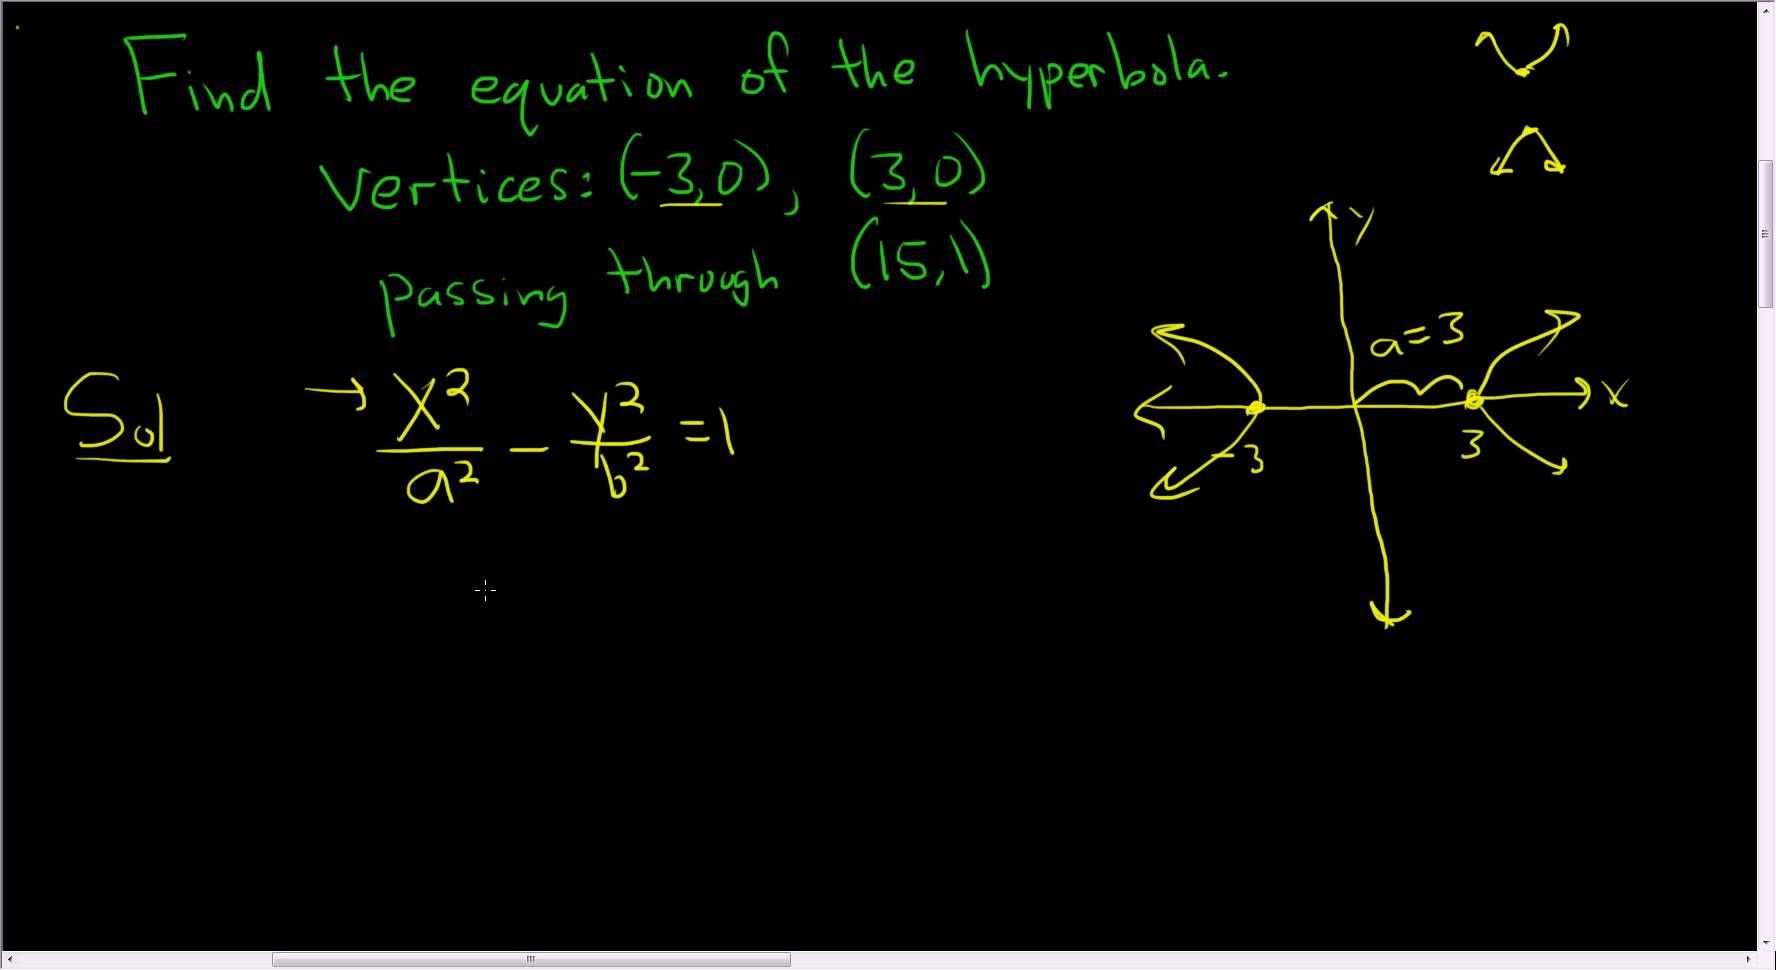 Finding The Equation Of A Hyperbola Given The Vertices And